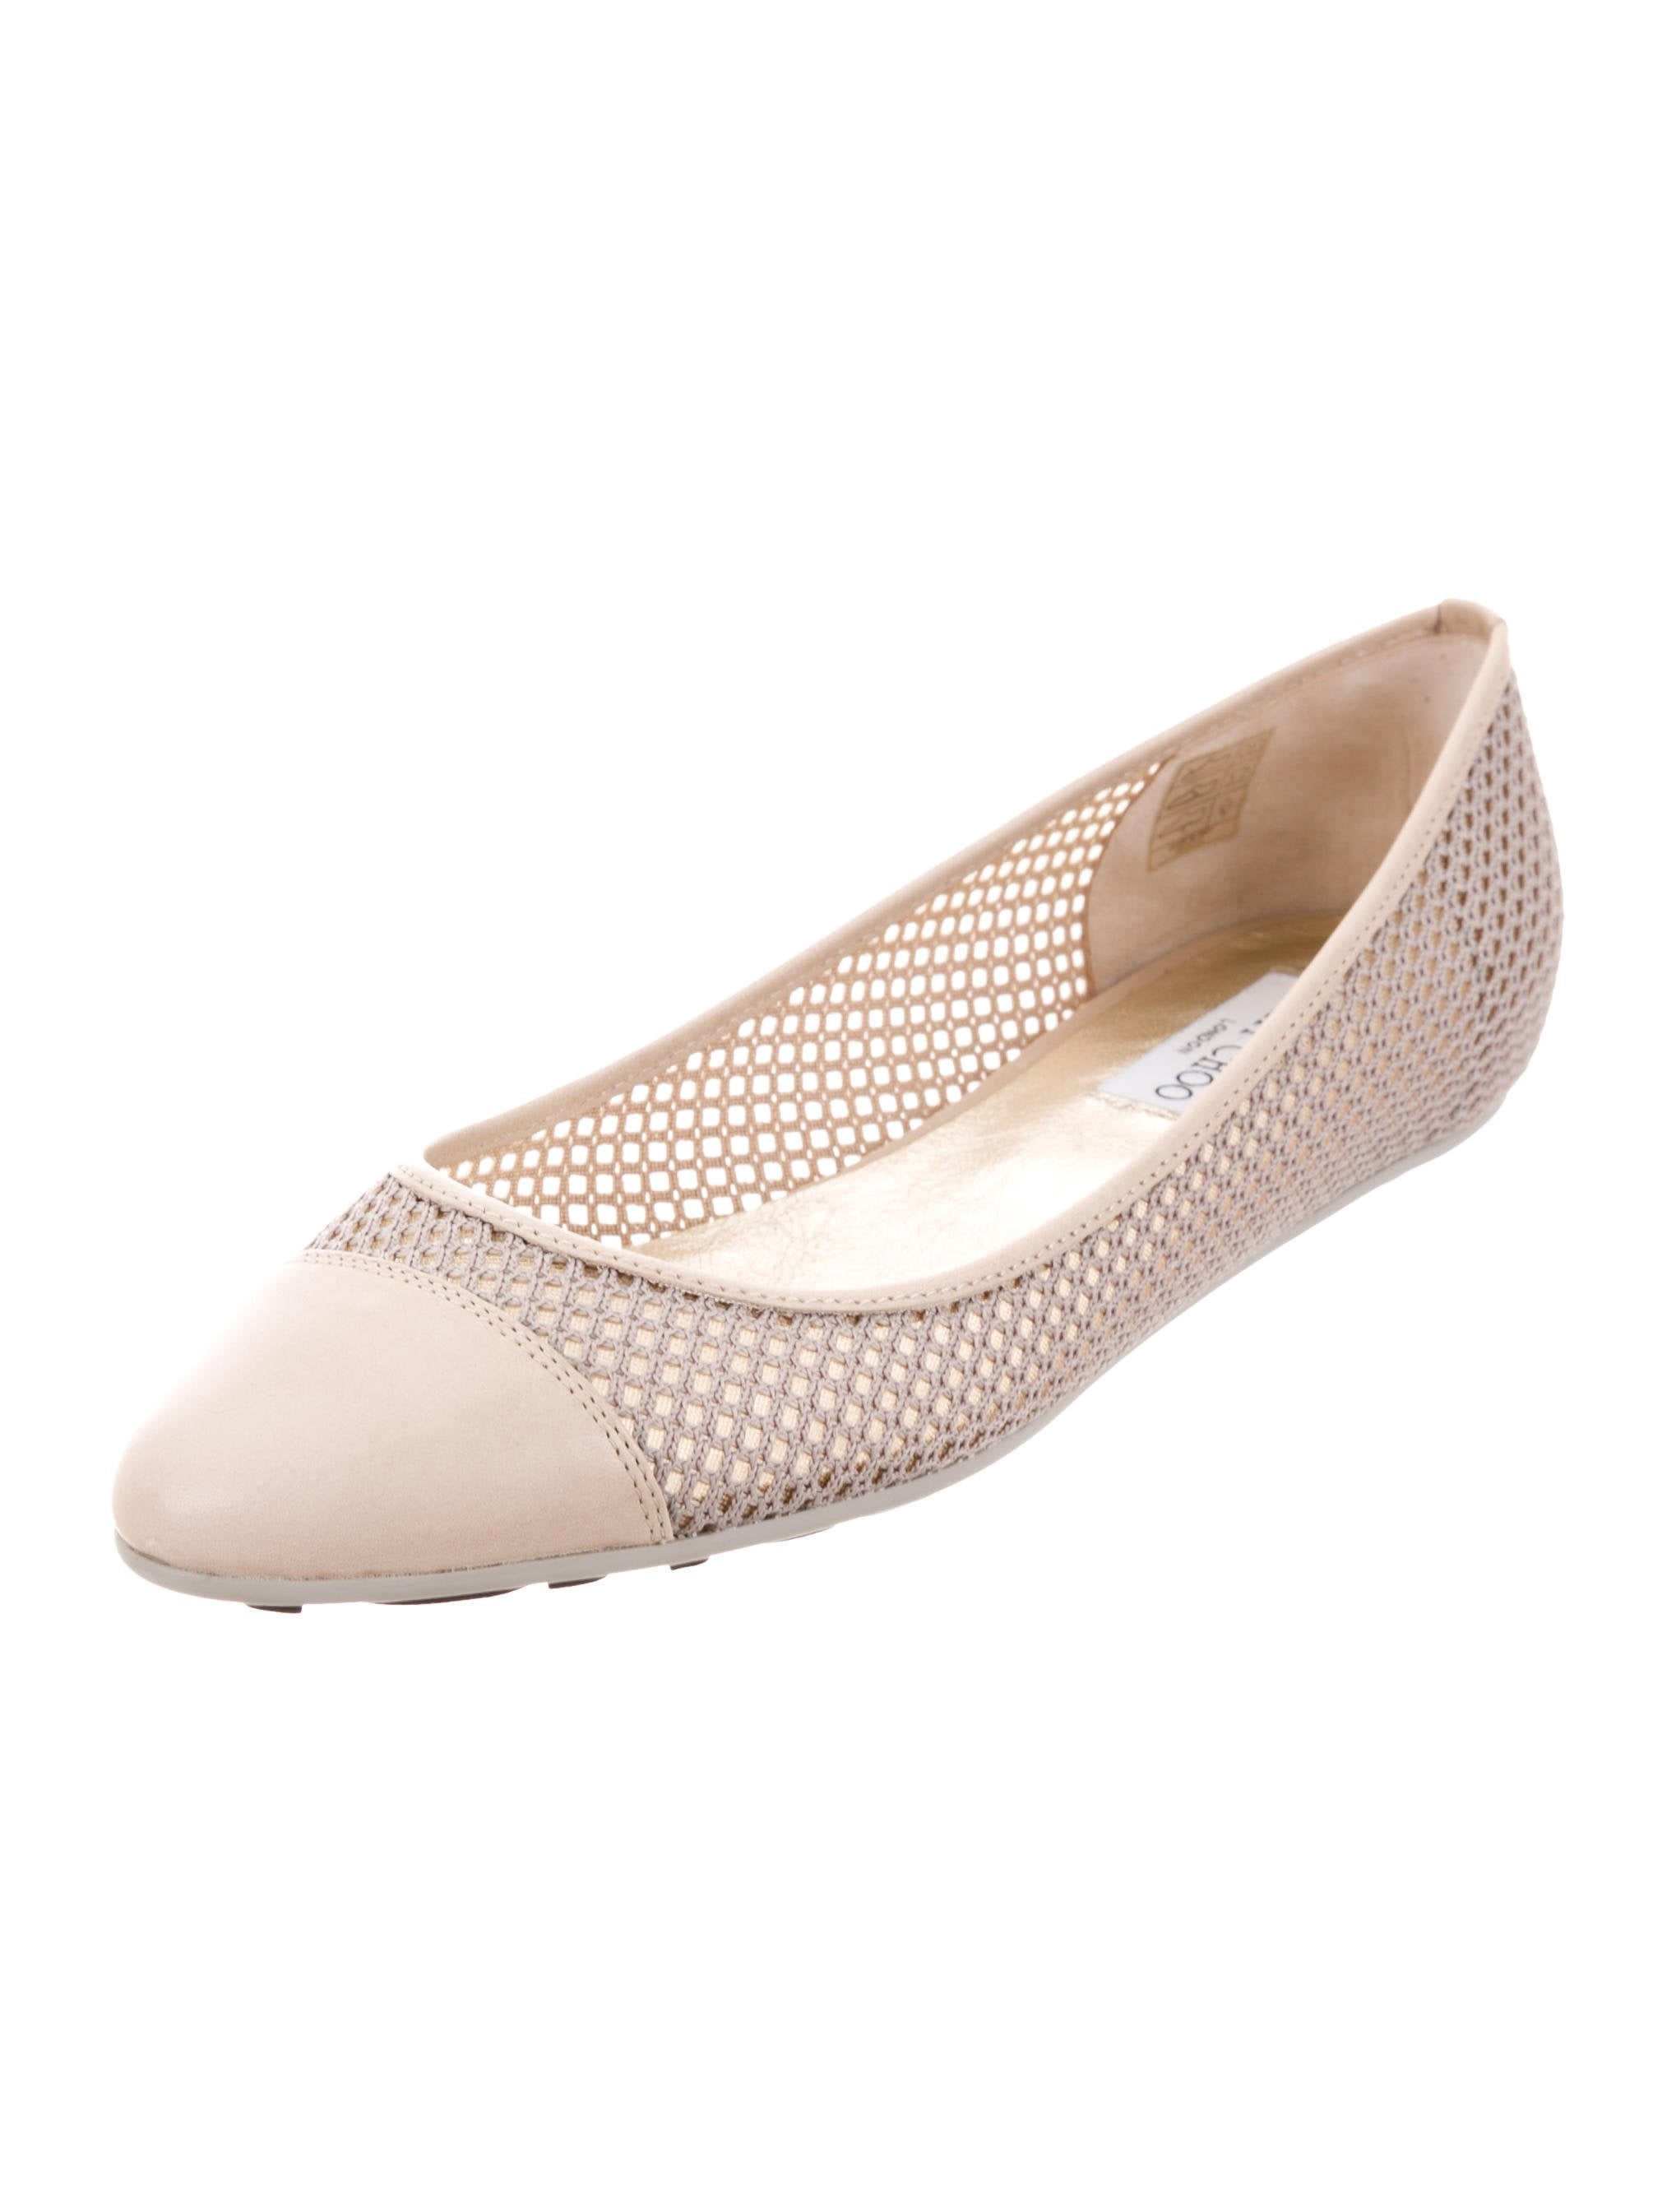 Jimmy Choo Waine Cap-Toe Flats w/ Tags amazing price cheap sale new styles EmTxE6E